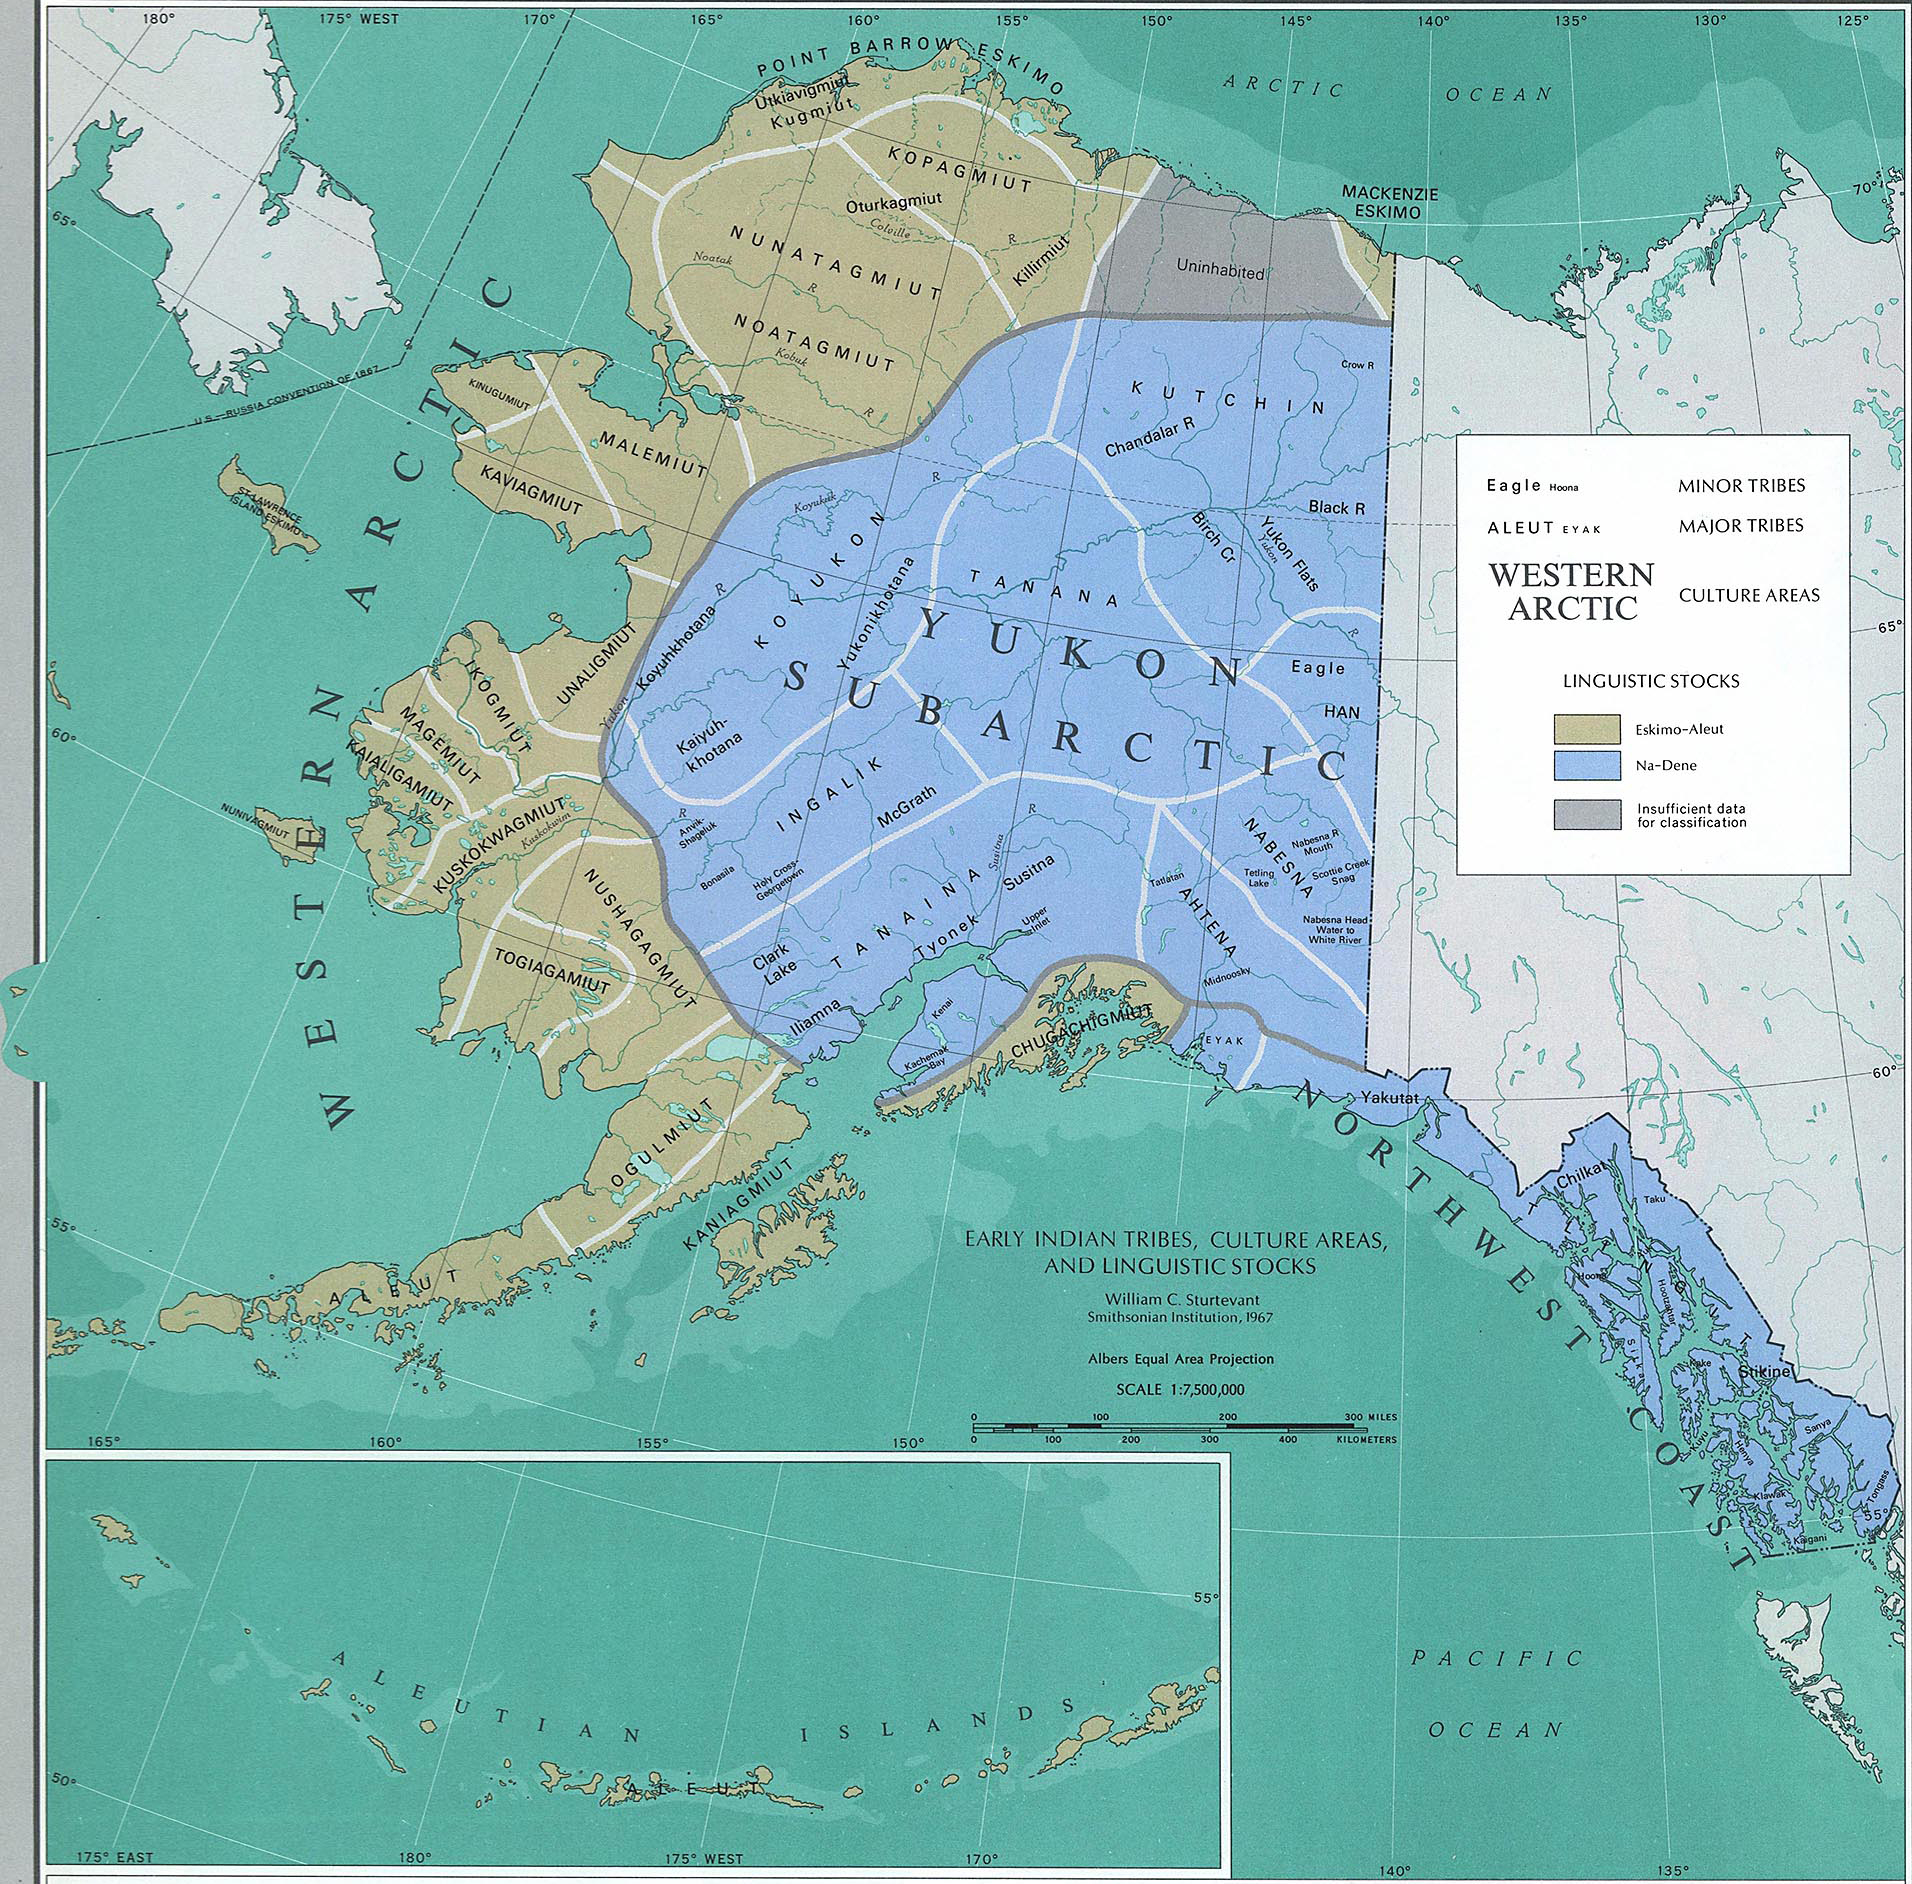 Map of Alaska - Early Indian Tribes, Culture Areas, and Linguistic Stocks